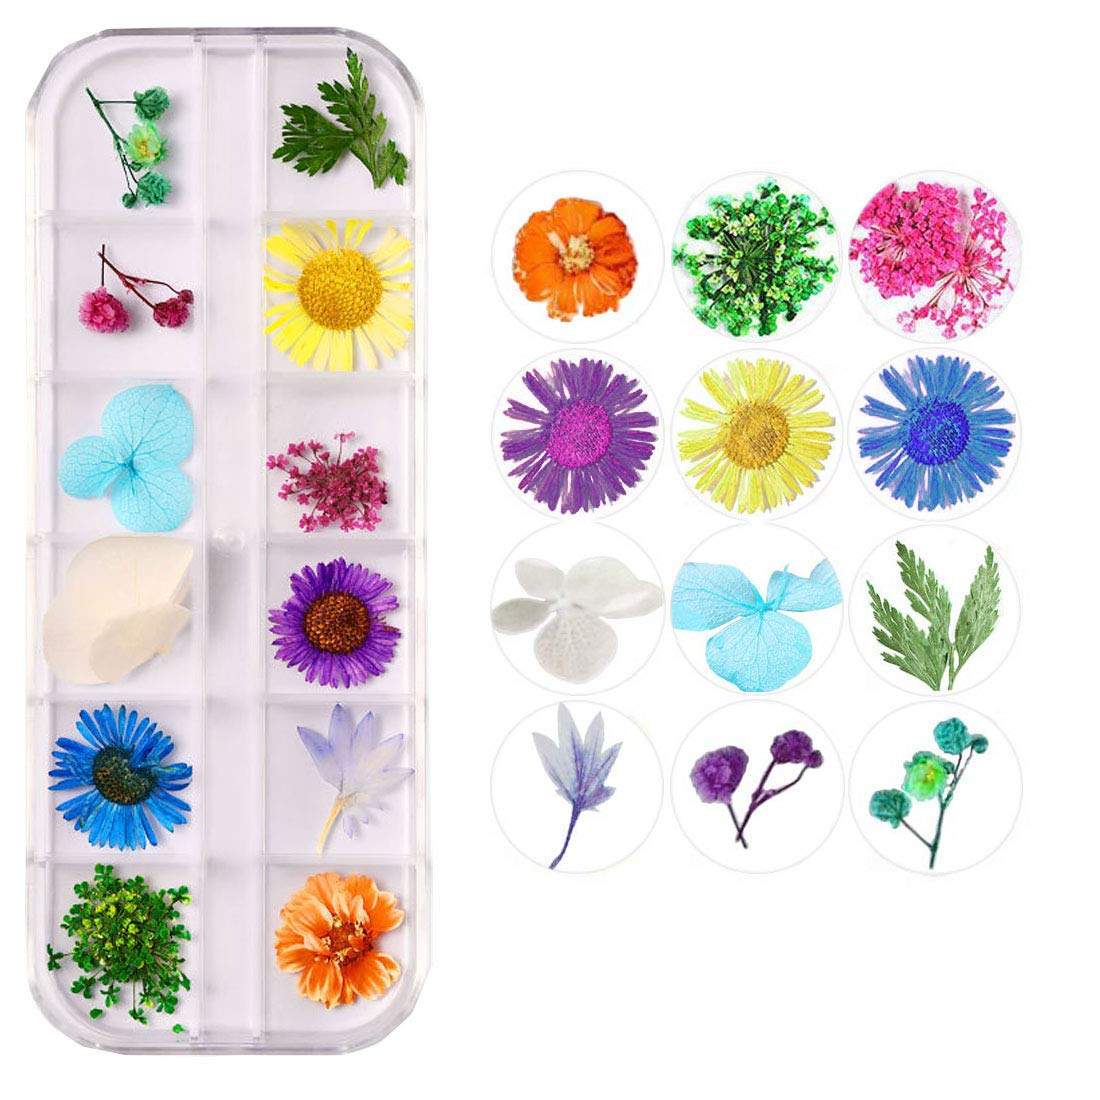 Nail Art Real Dried Flower Set 12 Colors Nail Dried Flowers, 3D Nail Art Real Flowers Nature Dry Petals Leaves Decor for Nail Art Design Manicure Decoration